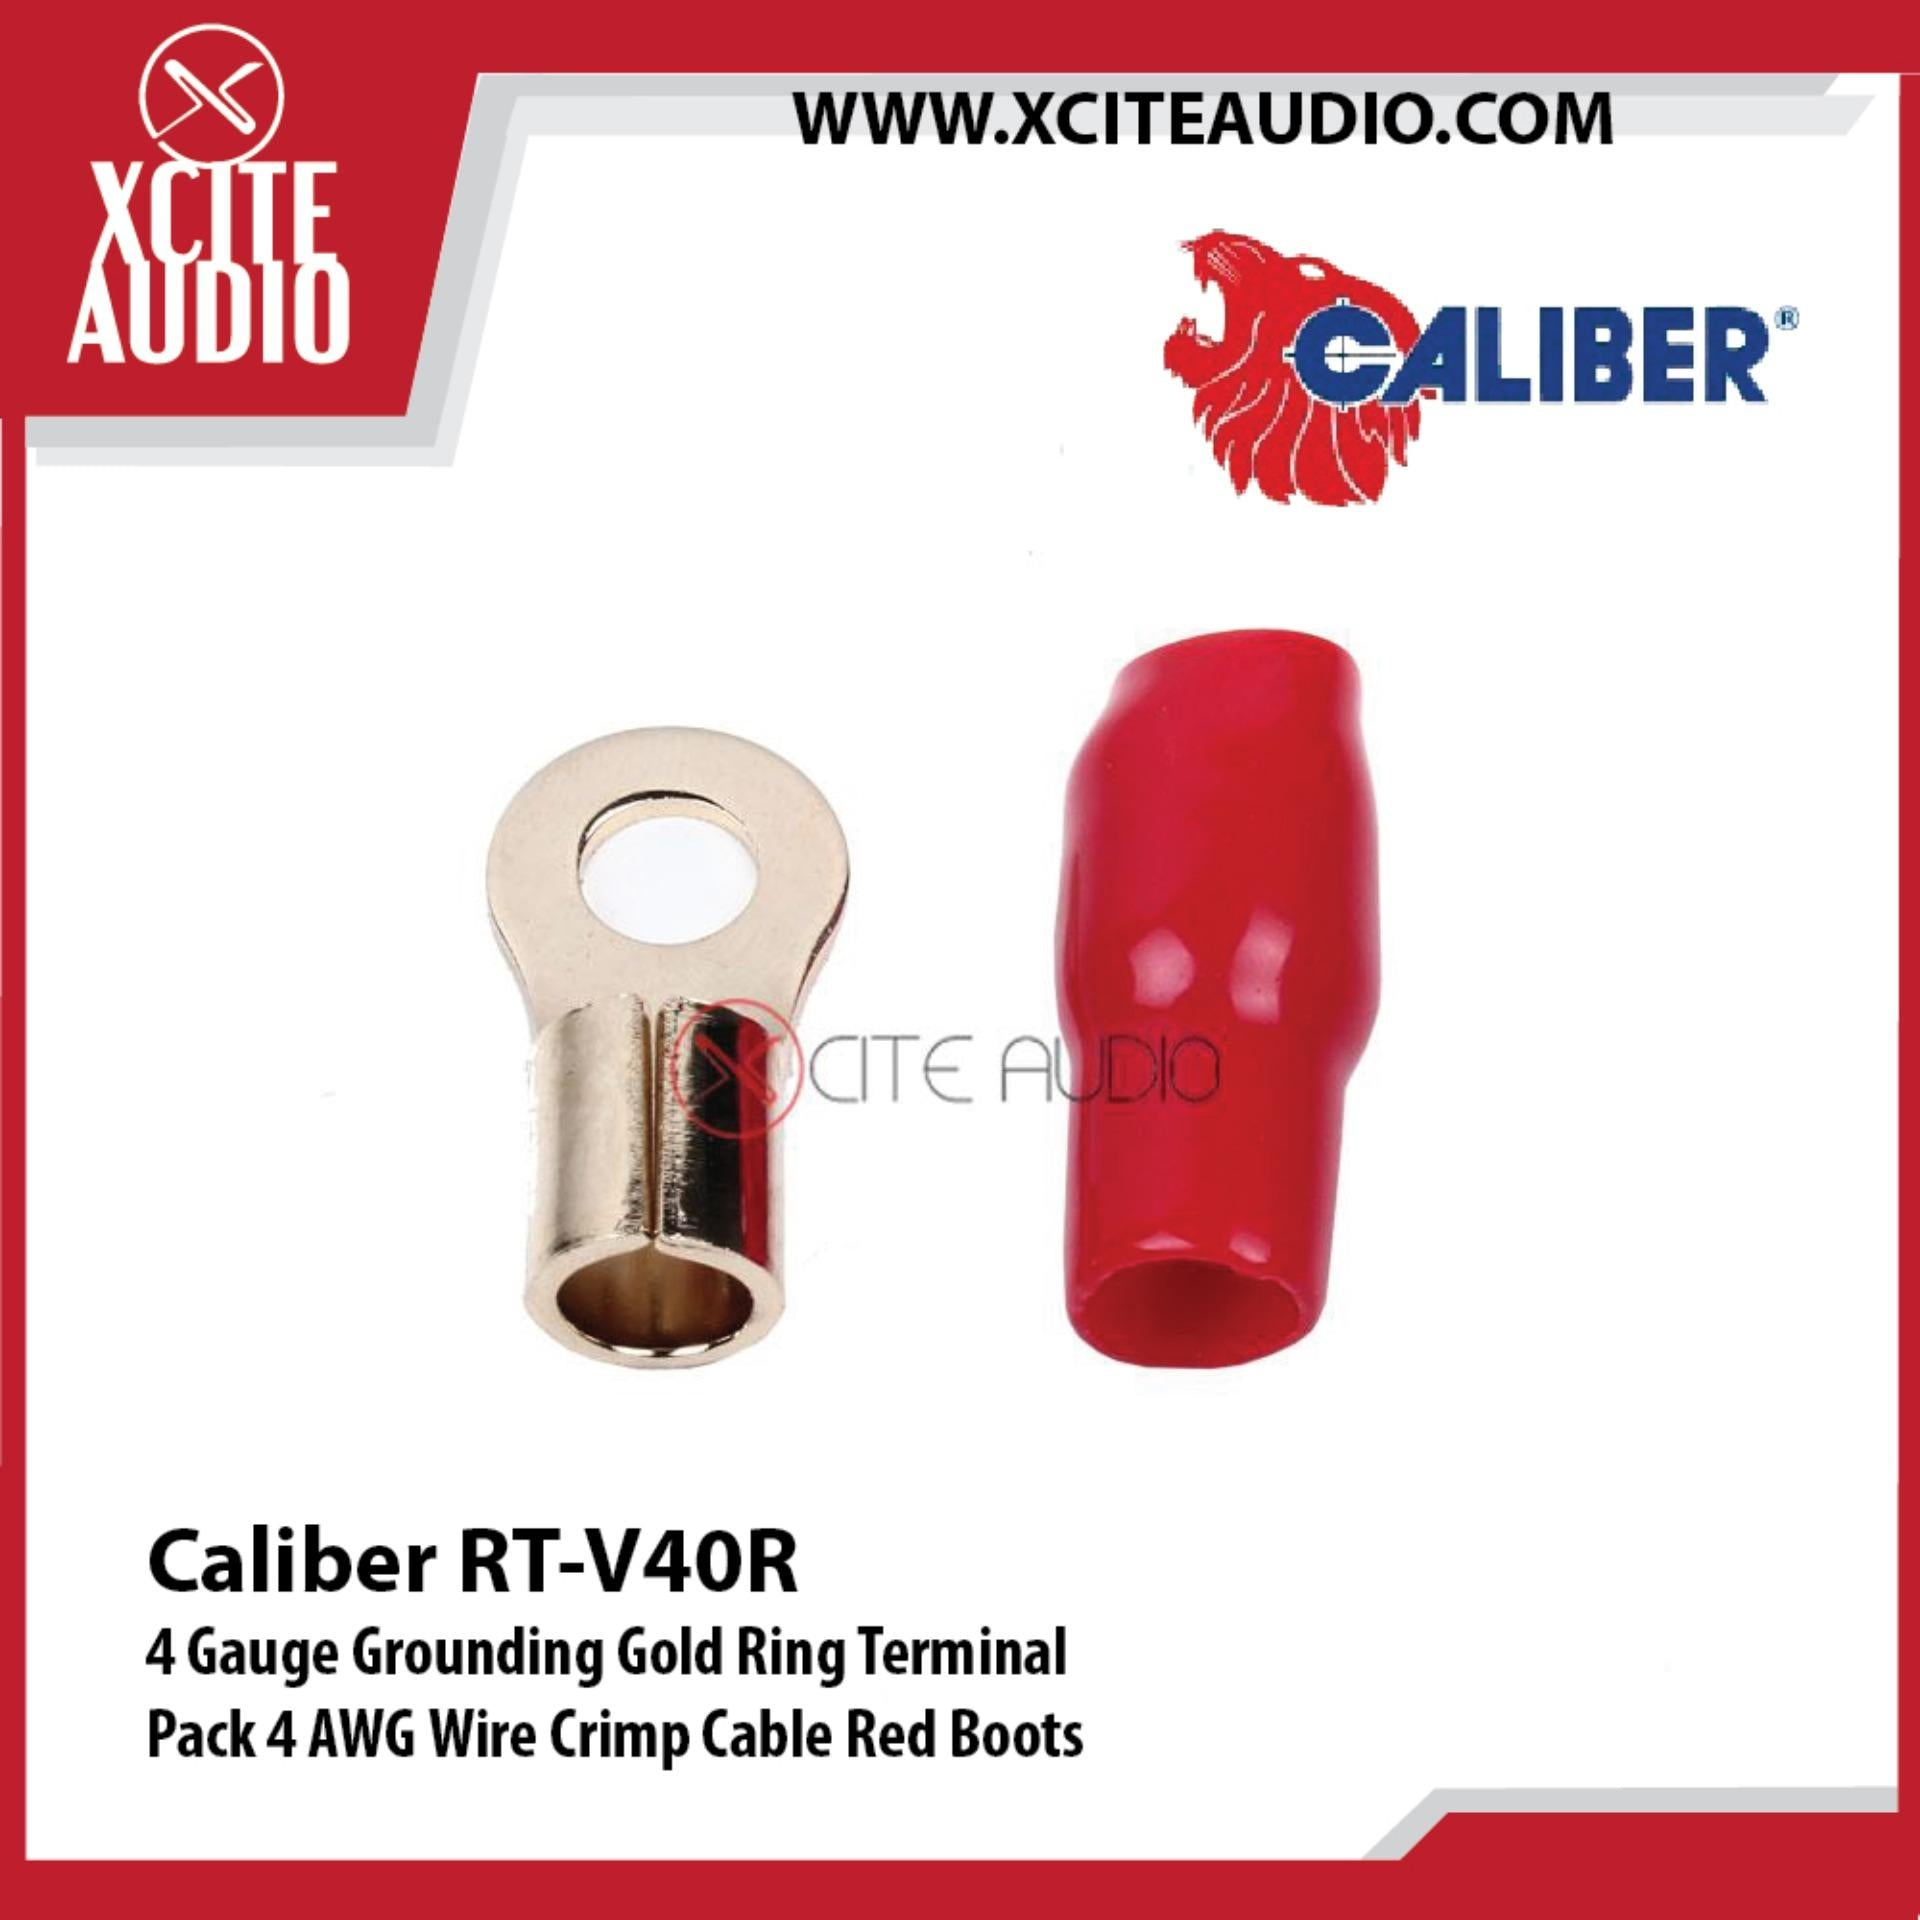 Caliber RT-V40R 4 Gauge Grounding Gold Ring Terminal 4 AWG Wire Crimp Cable Red Boots - Xcite Audio